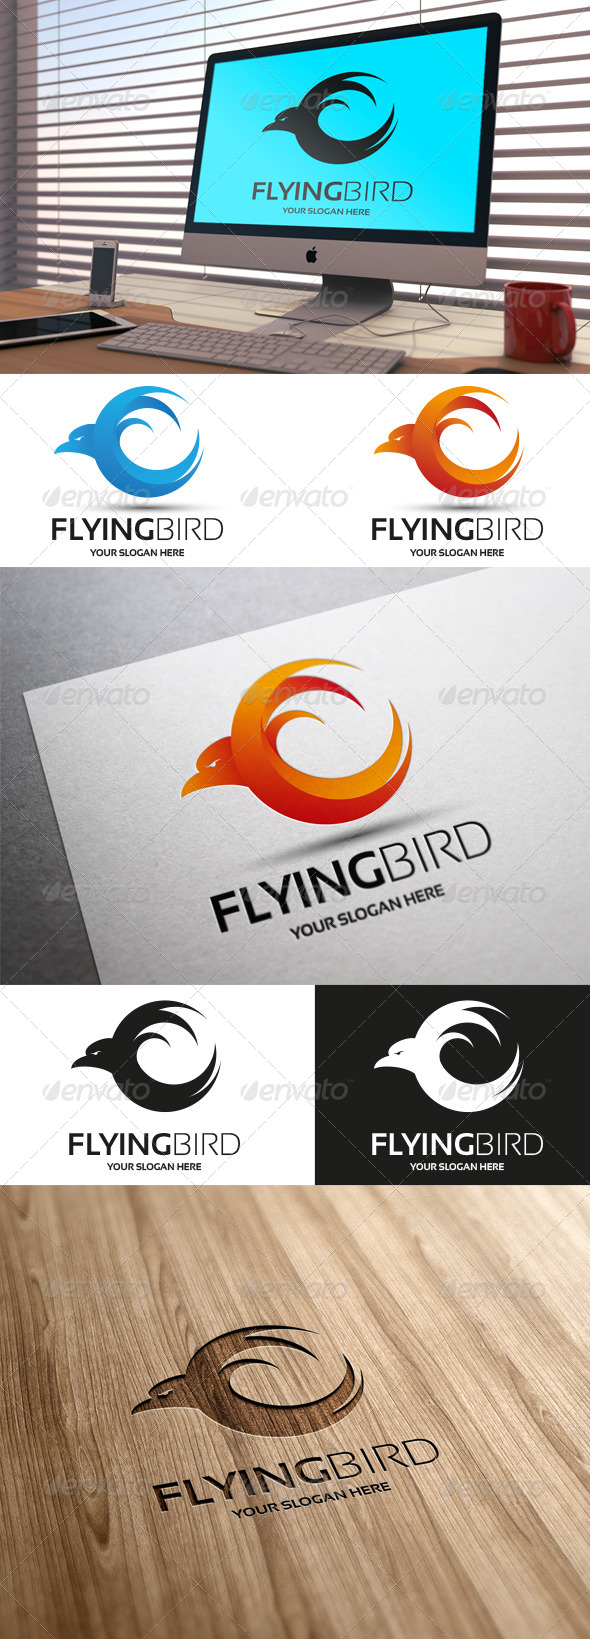 GraphicRiver Flying Bird 7031370